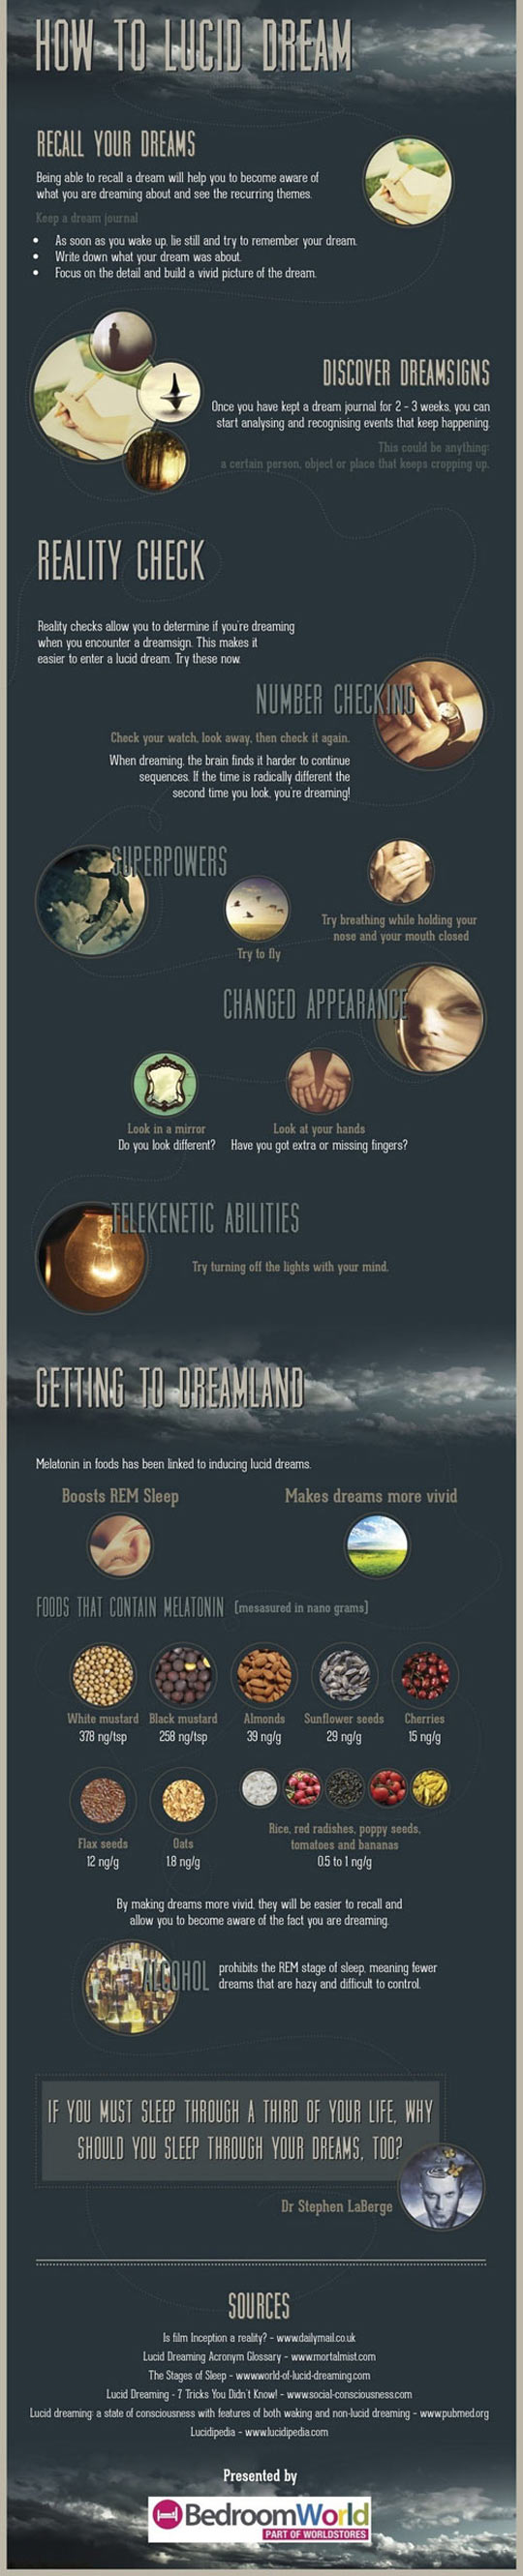 cool-control-lucid-dreams-training-infographic